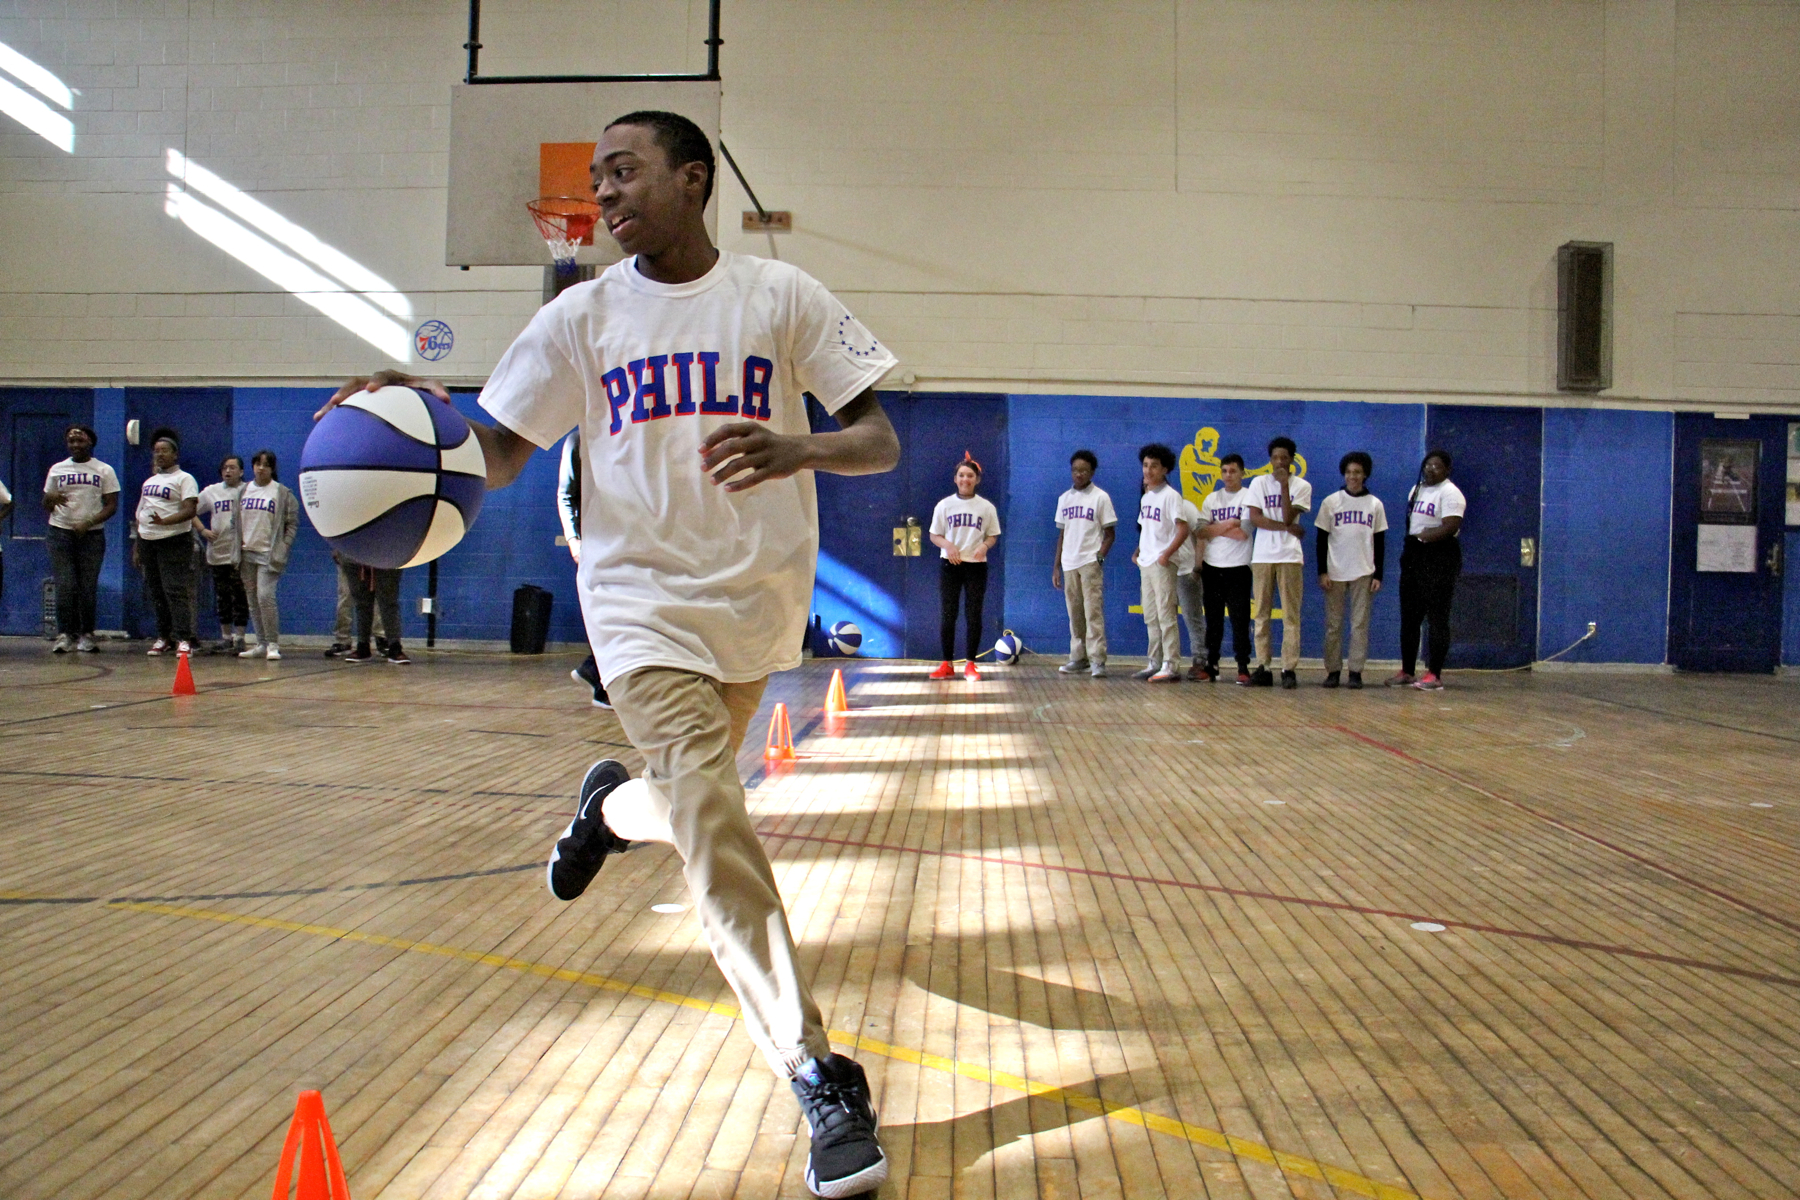 Eighth grader Phillip Bland and his classmates enjoy a Sixers basketball clinic at their school.